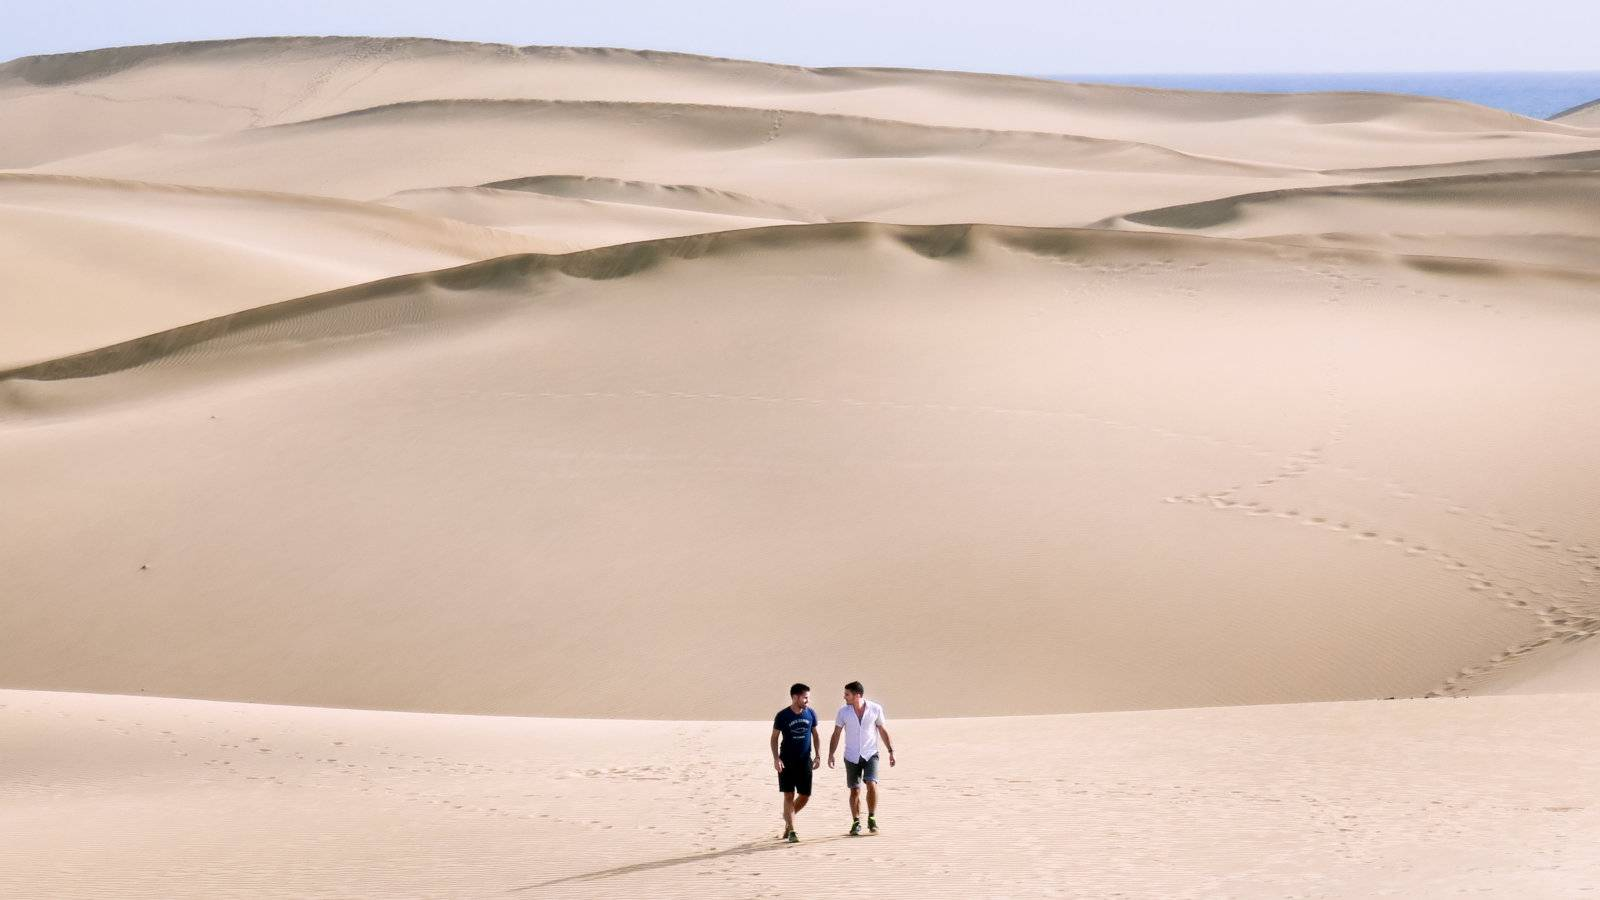 The sand dunes of Maspalomas in Gran Canaria are an impressive sight, and a popular spot for some gay cruising!